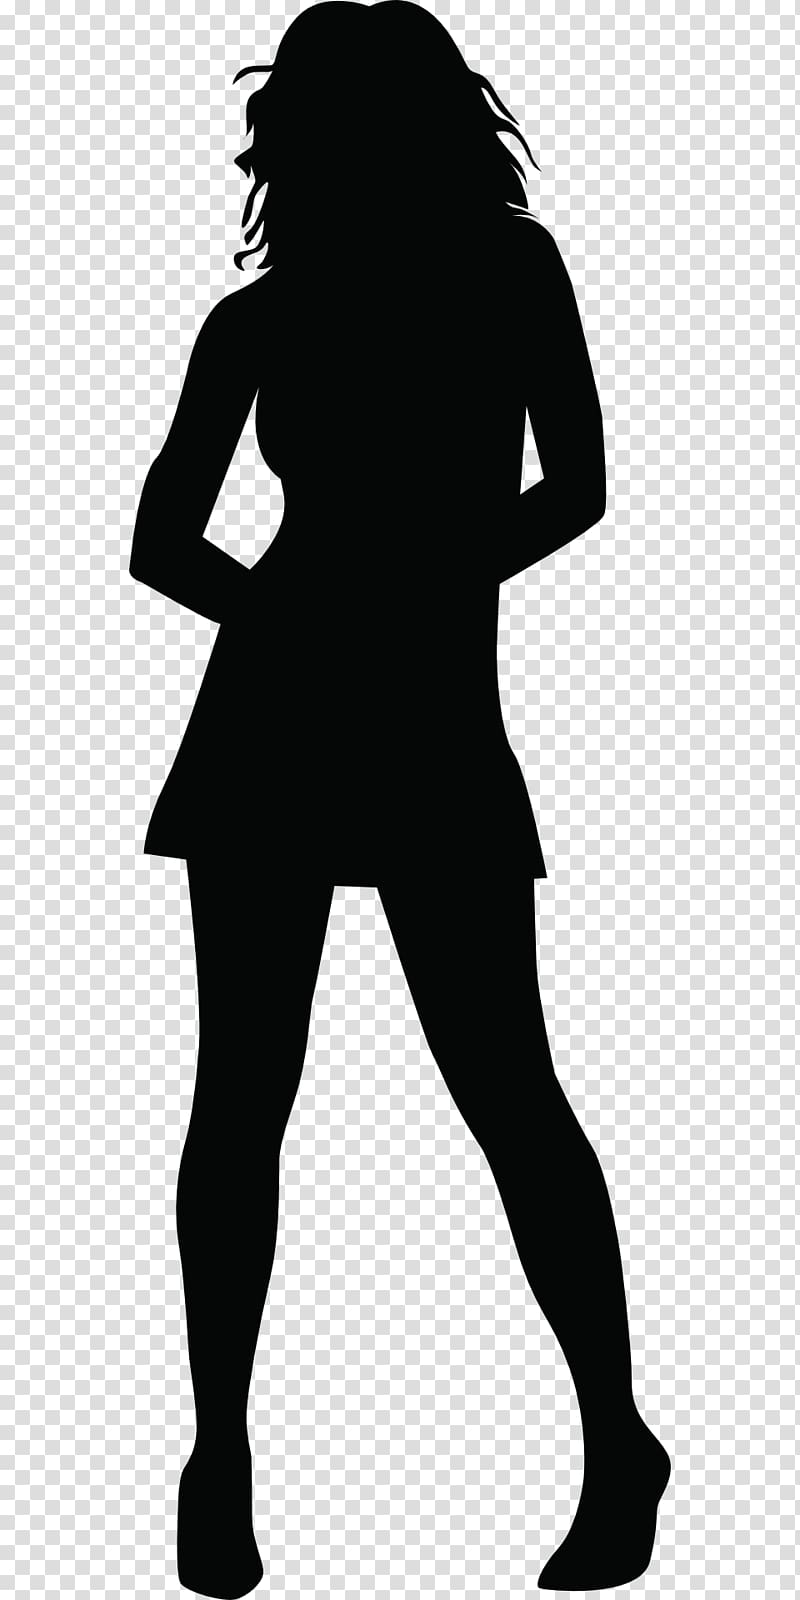 Silhouette Woman , woman silhouette transparent background.